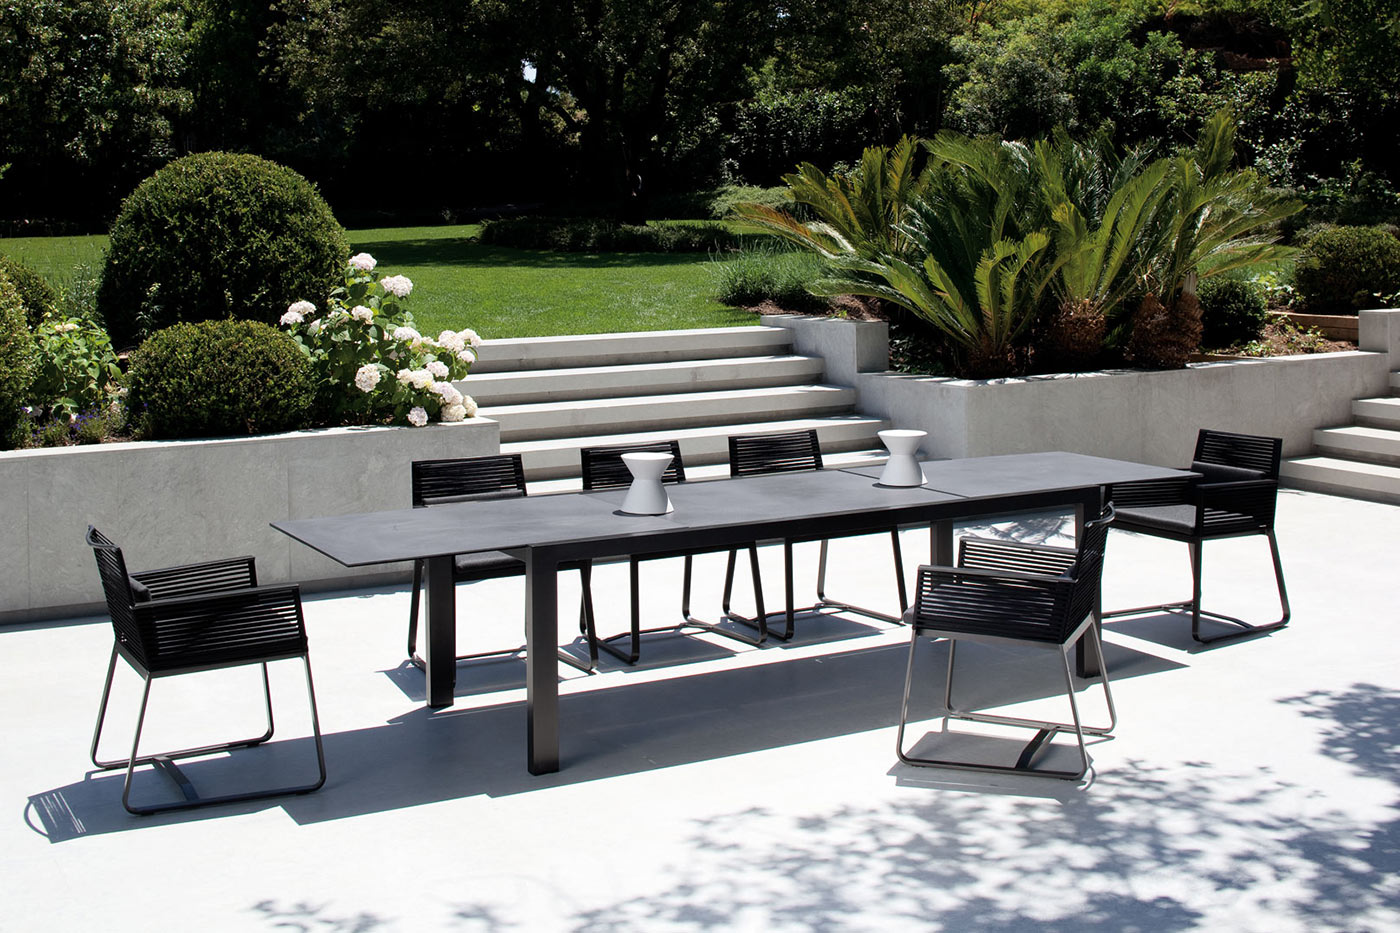 Obegi Home Outdoor Furniture kettal 20